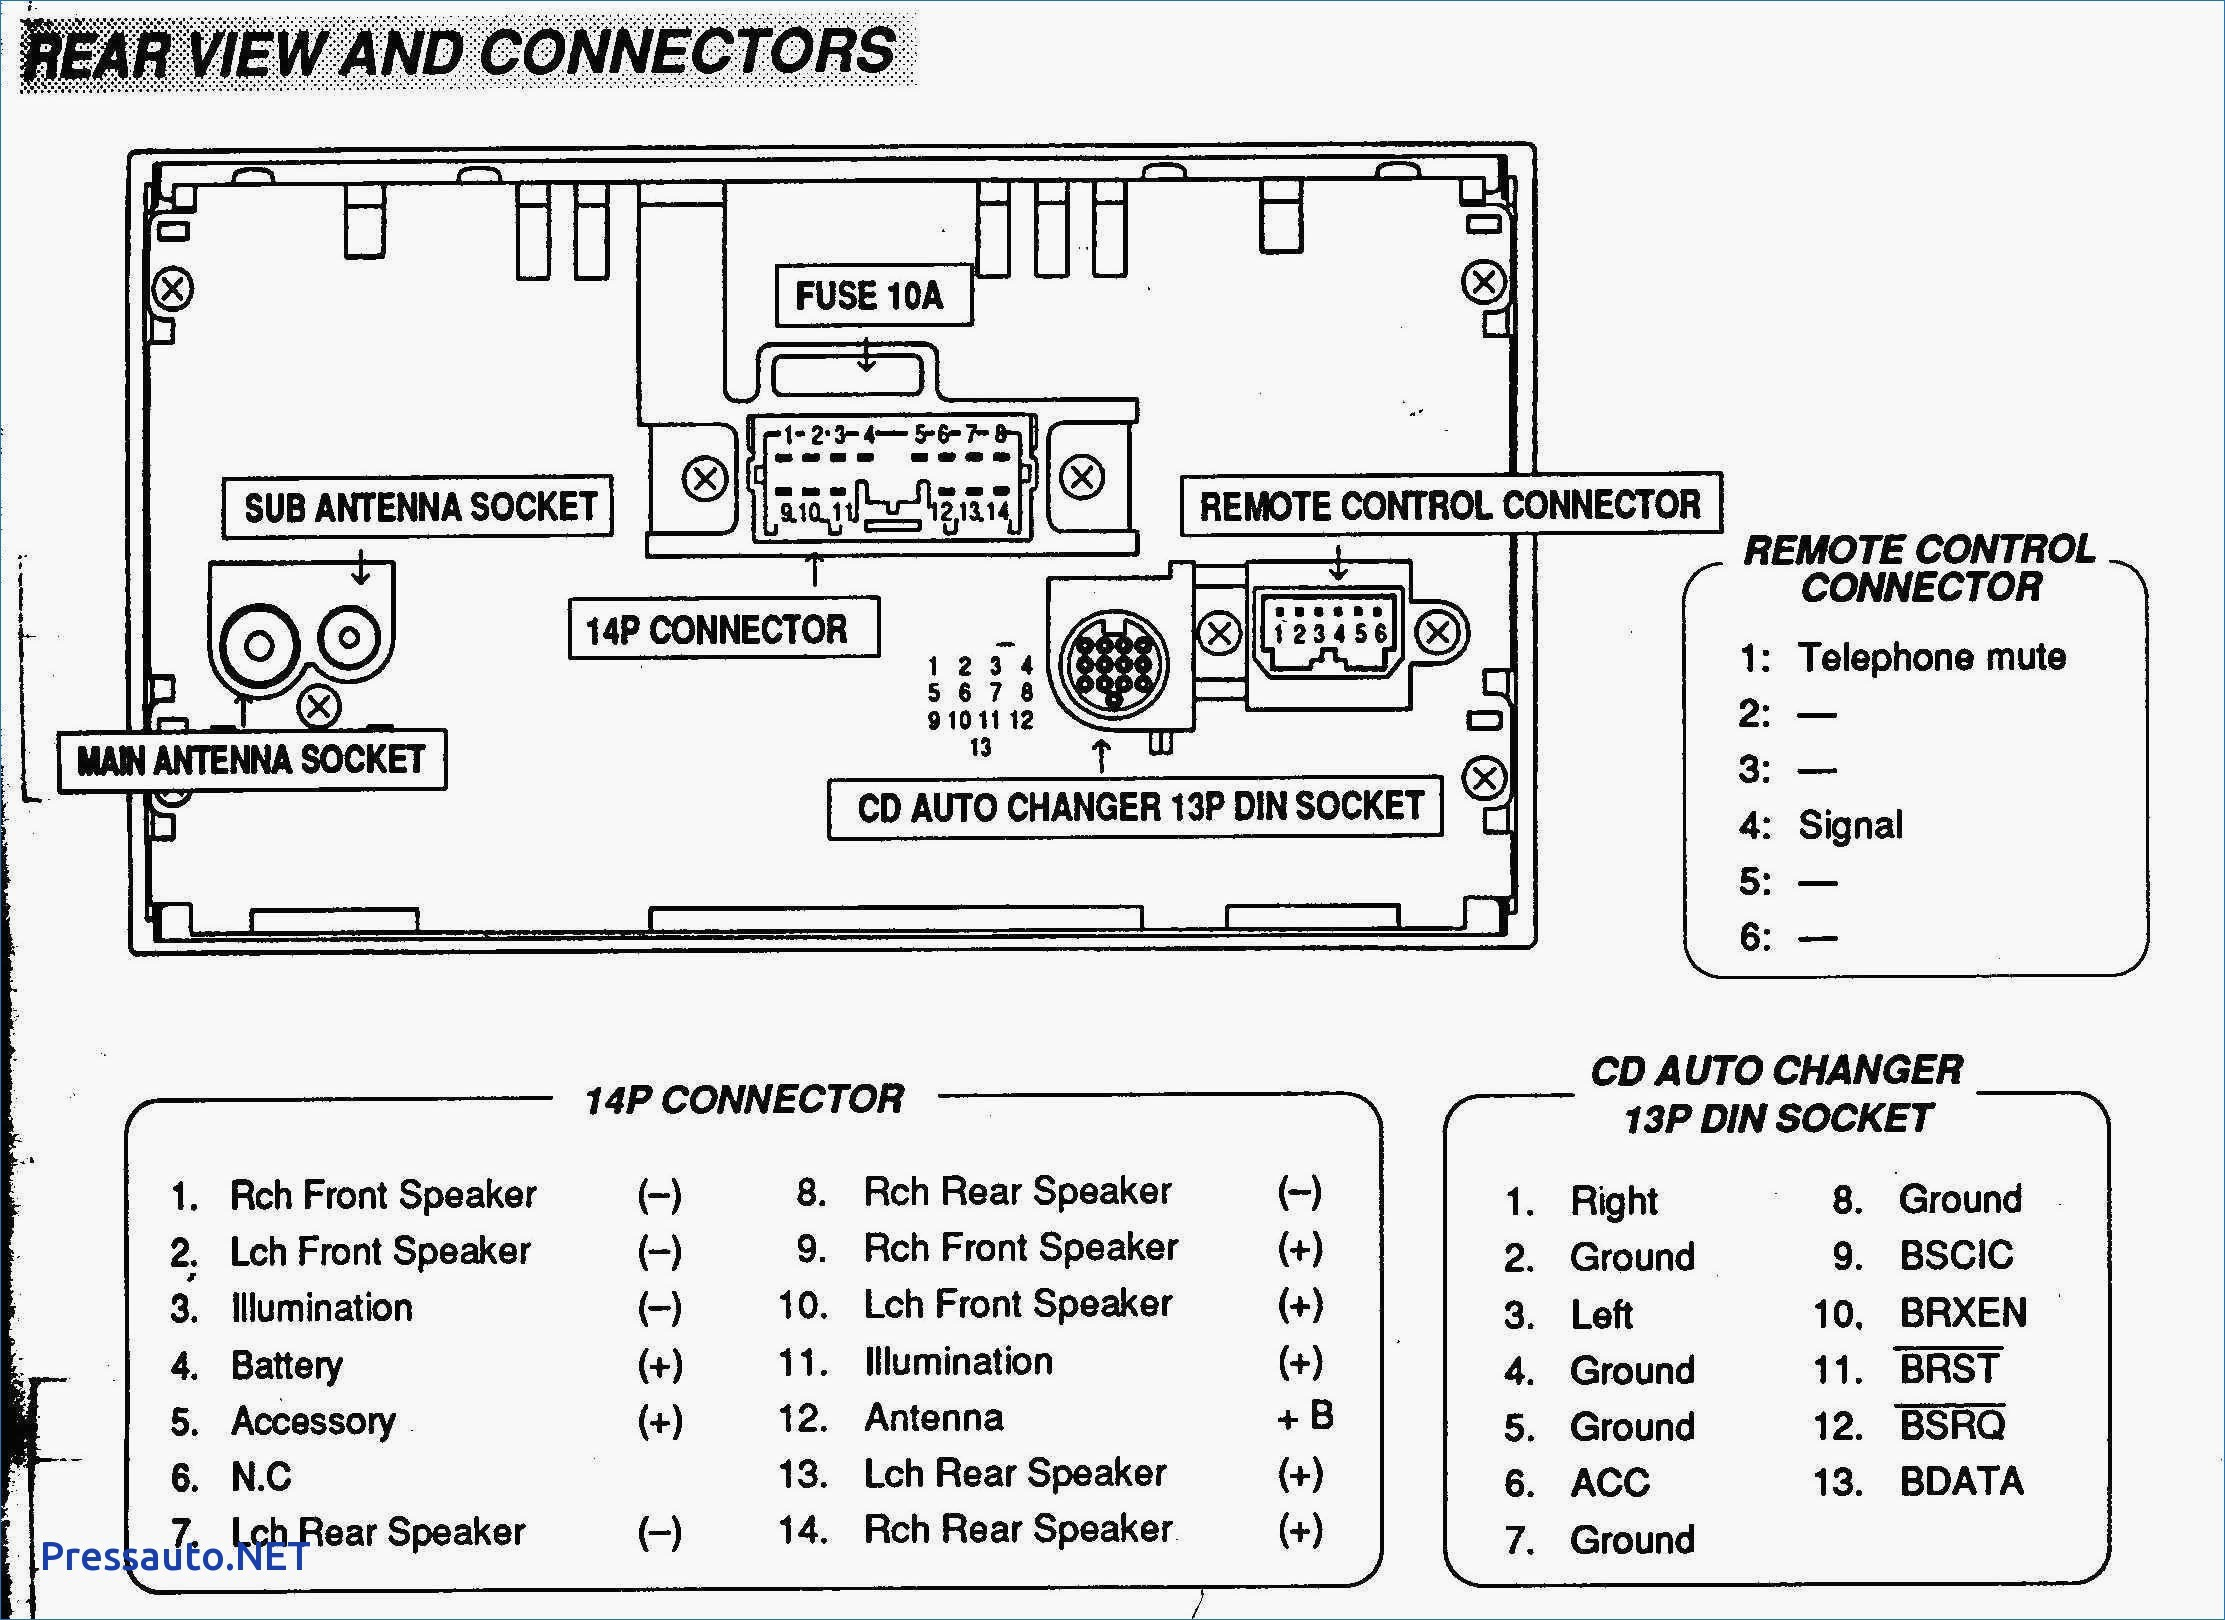 2000 Vw Jetta 2 0 Engine Diagram 03 Jetta 2 0 Engine Diagram Another Blog About Wiring Diagram • Of 2000 Vw Jetta 2 0 Engine Diagram